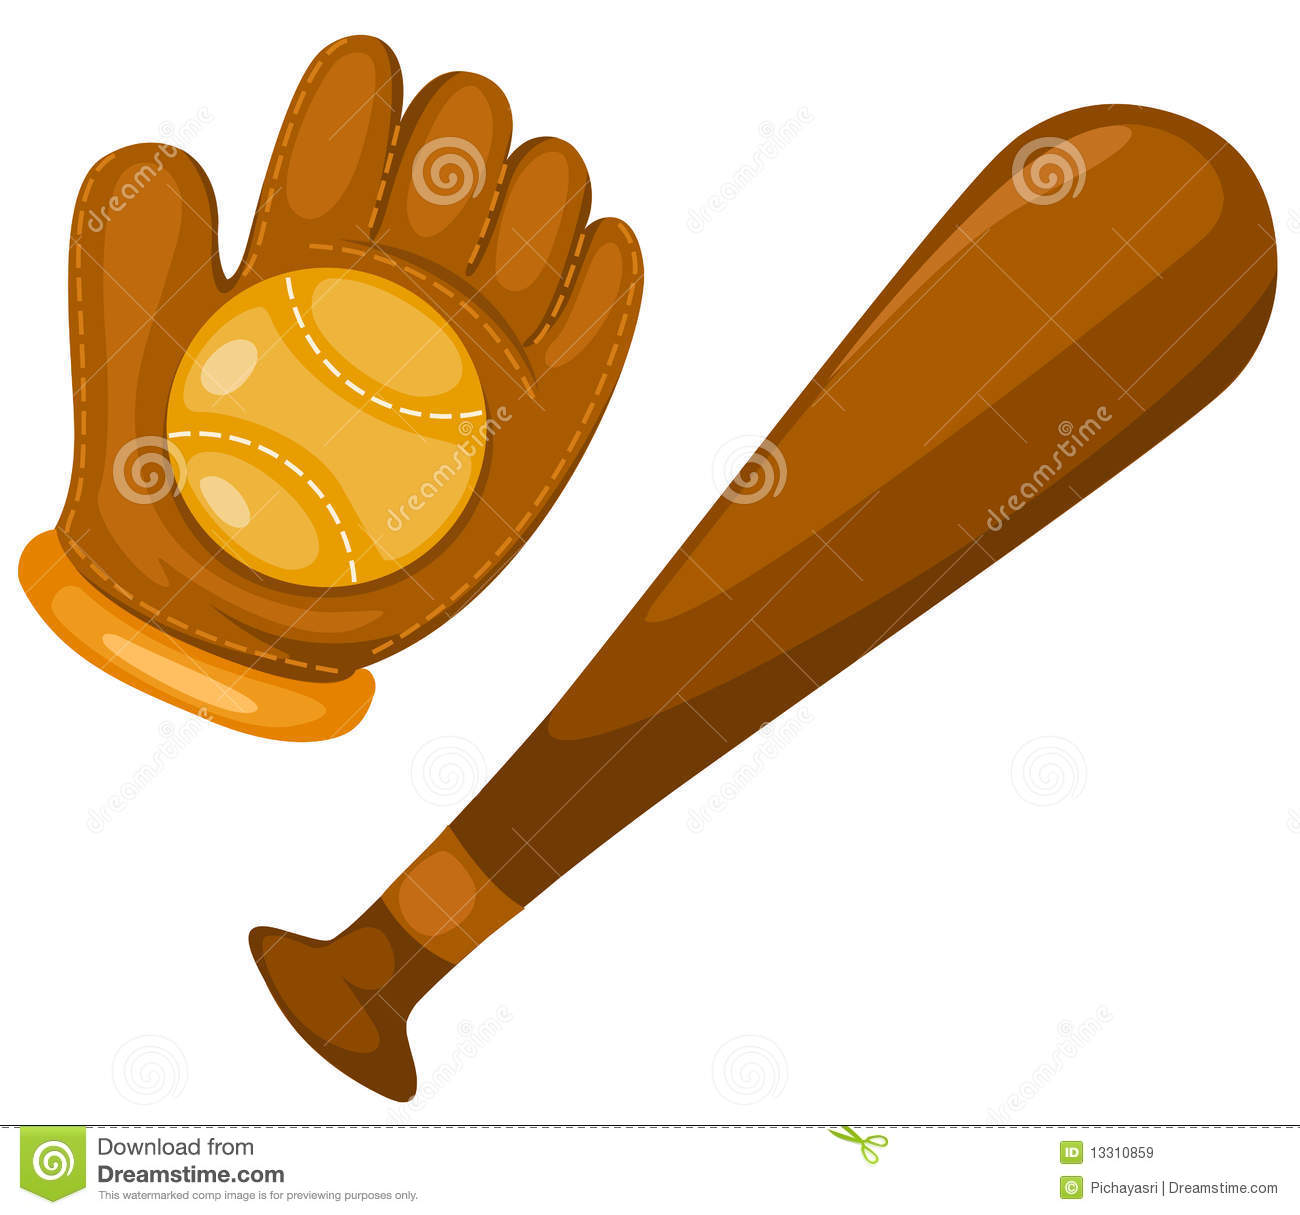 Bat clipart baseball mitt And clipart Glove Bat Baseball